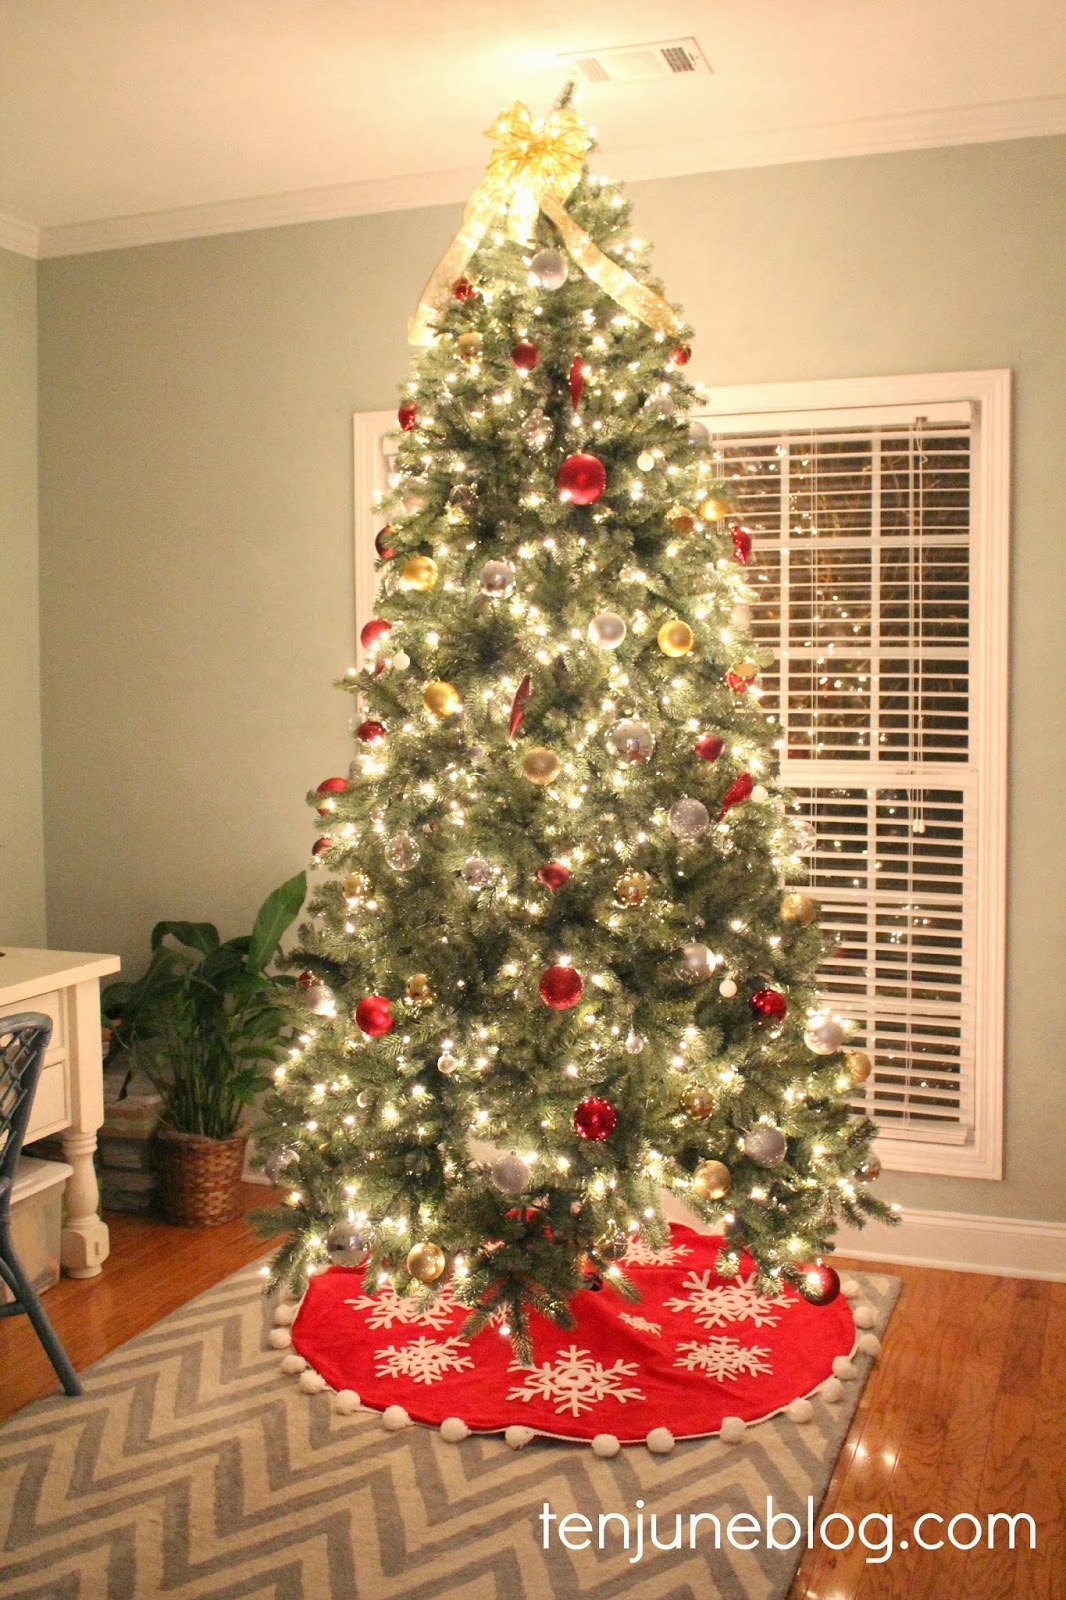 Red and gold christmas tree decorating ideas - Red And Gold Christmas Tree Decorating Ideas 23